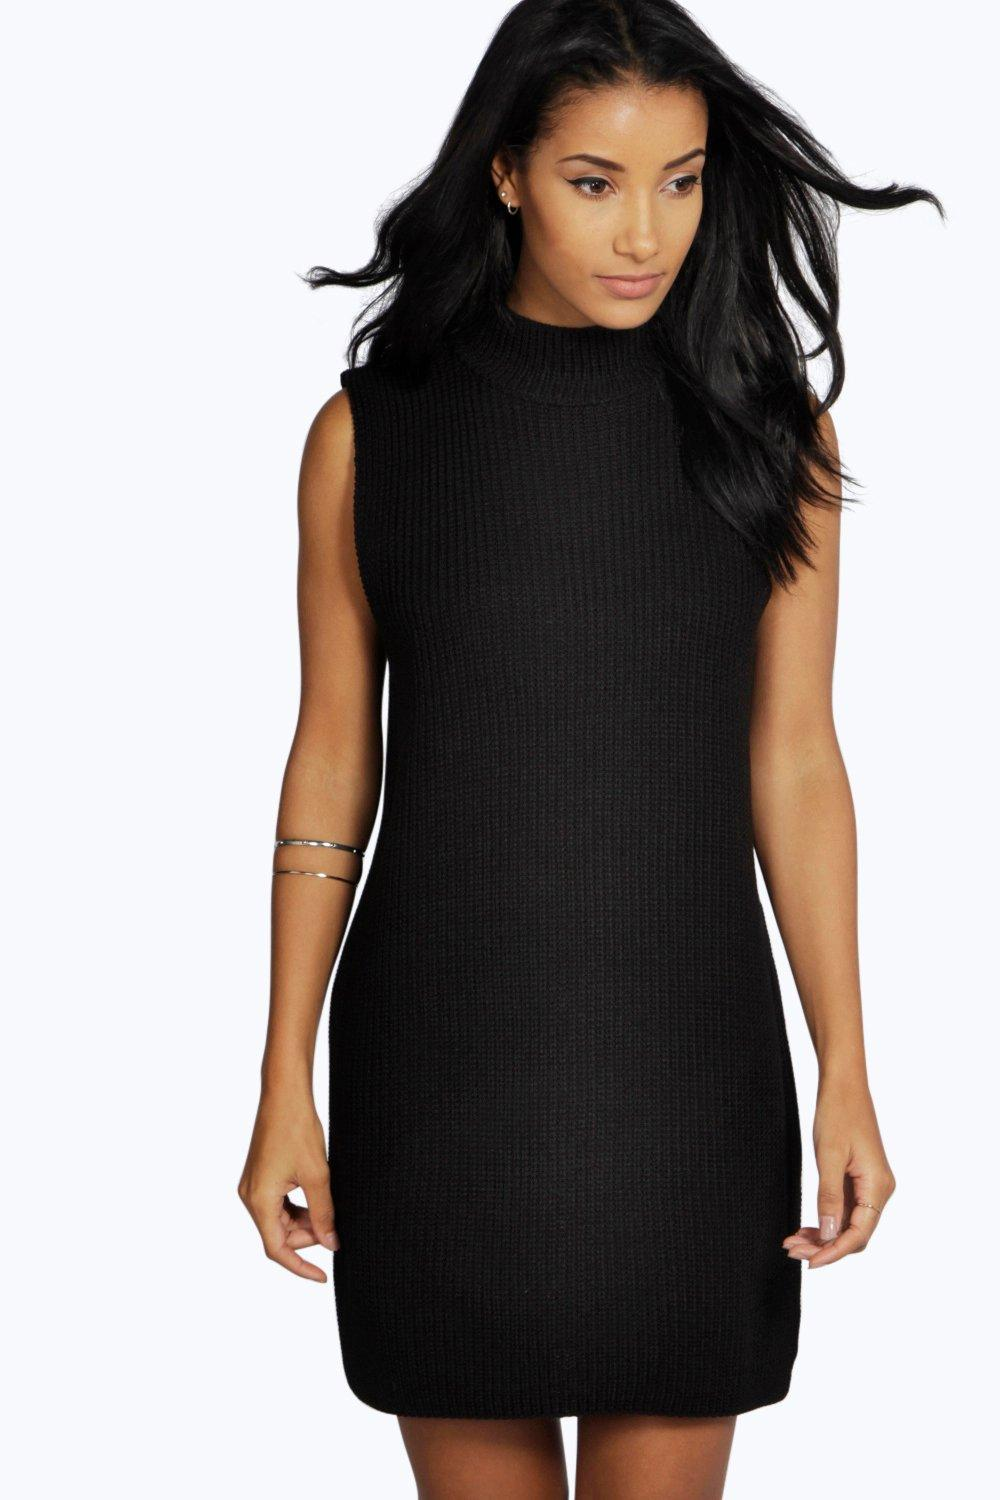 boohoo Sofia Turtle Neck Tunic Dress - black